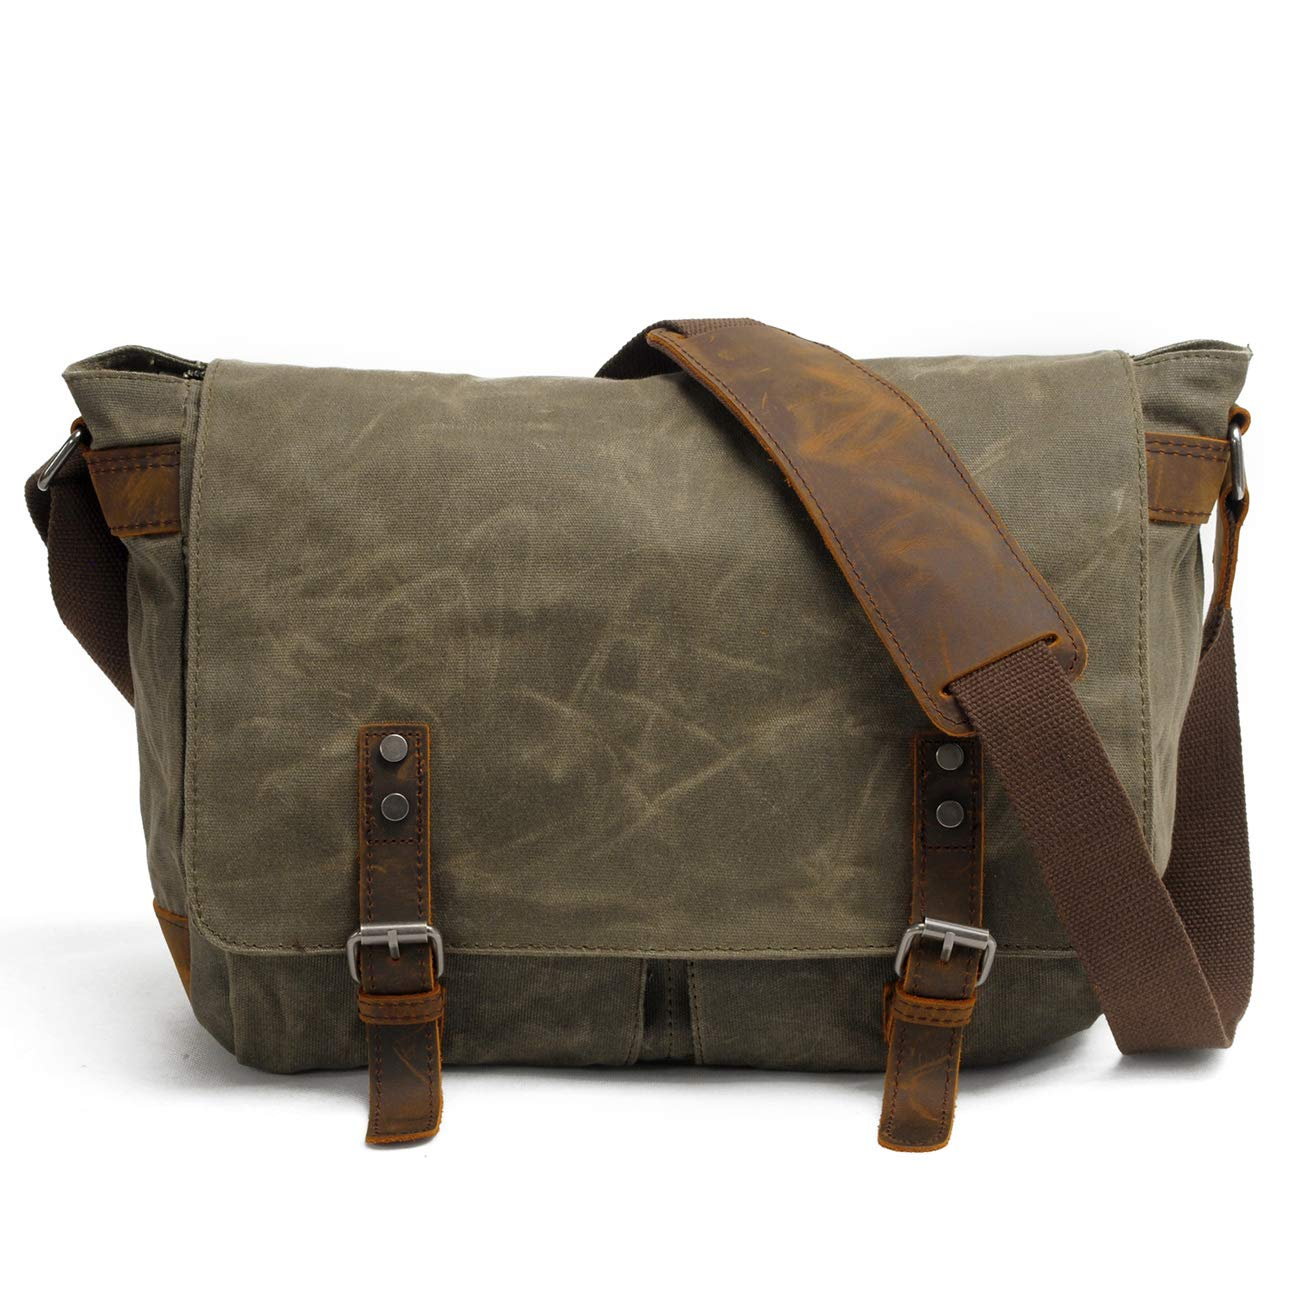 GEREMEN Mens Messenger Bag Genuine Leather Canvas Messenger Bag Waterproof Laptop Messenger Bag for 15 inch Laptop Vintage Satchel Briefcase Cross Body Shoulder Bag for Everyday Use 16928 ArmyGreen